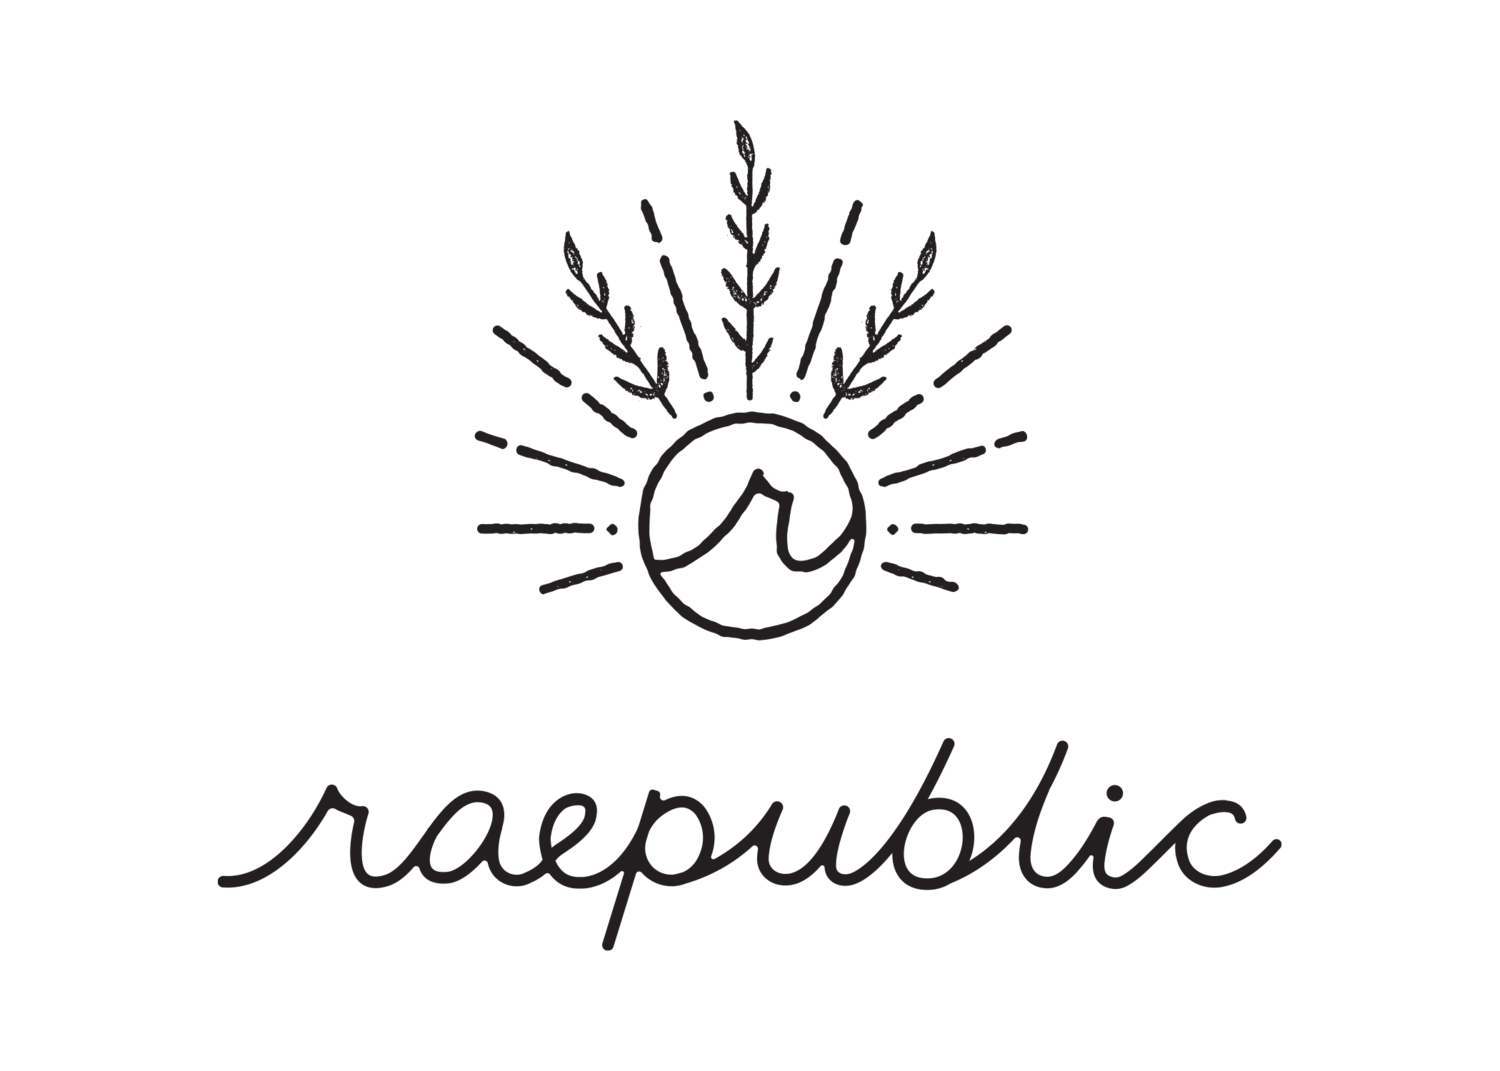 Raepublic - Plant-based recipes for mental health.